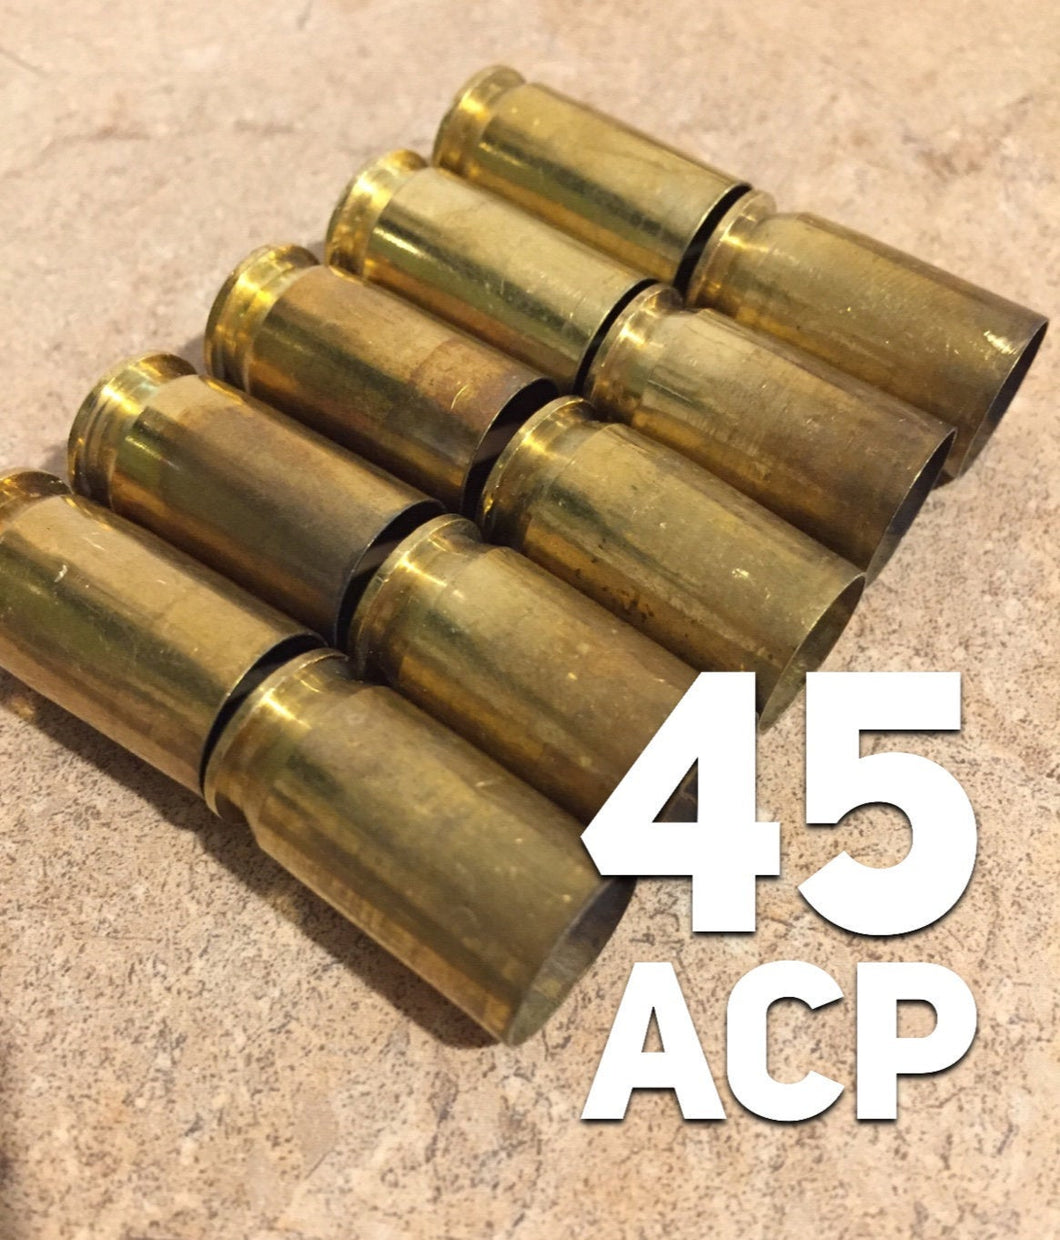 45 ACP Empty Brass Shells